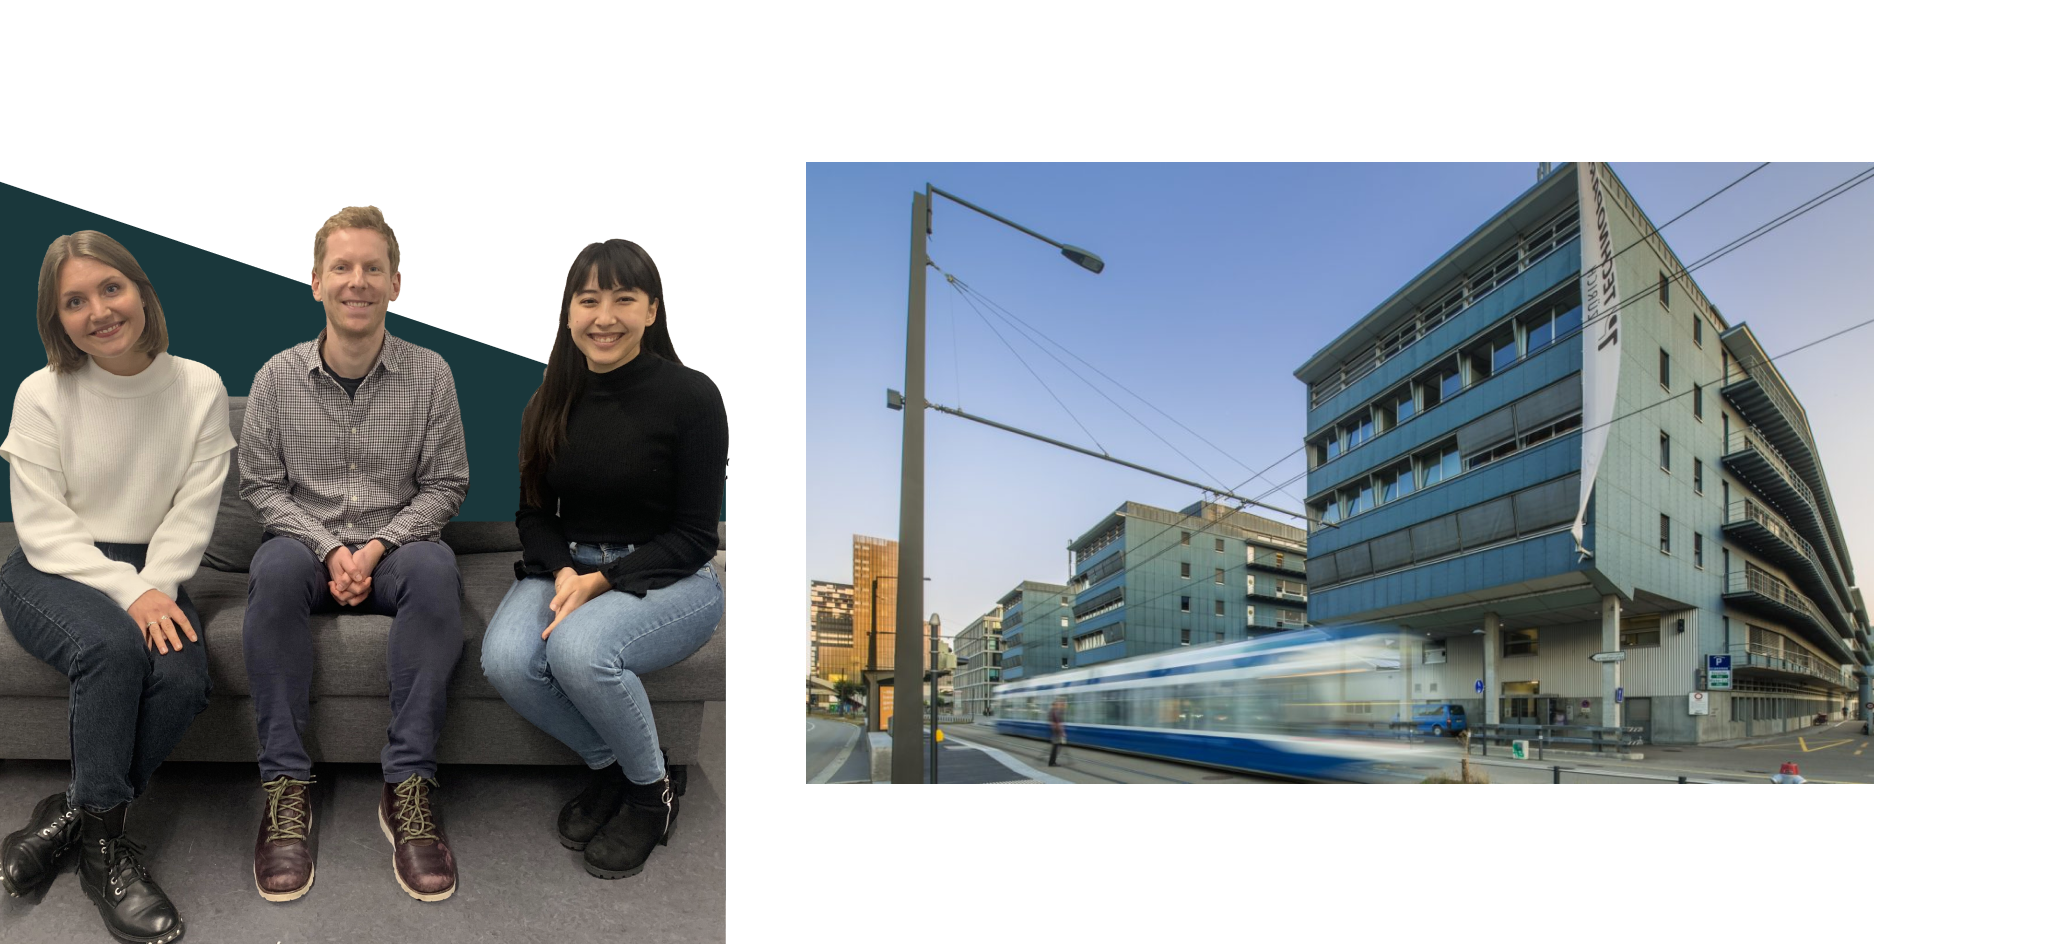 (left) An image of 3 Yokoy team members and (right) Technopark view